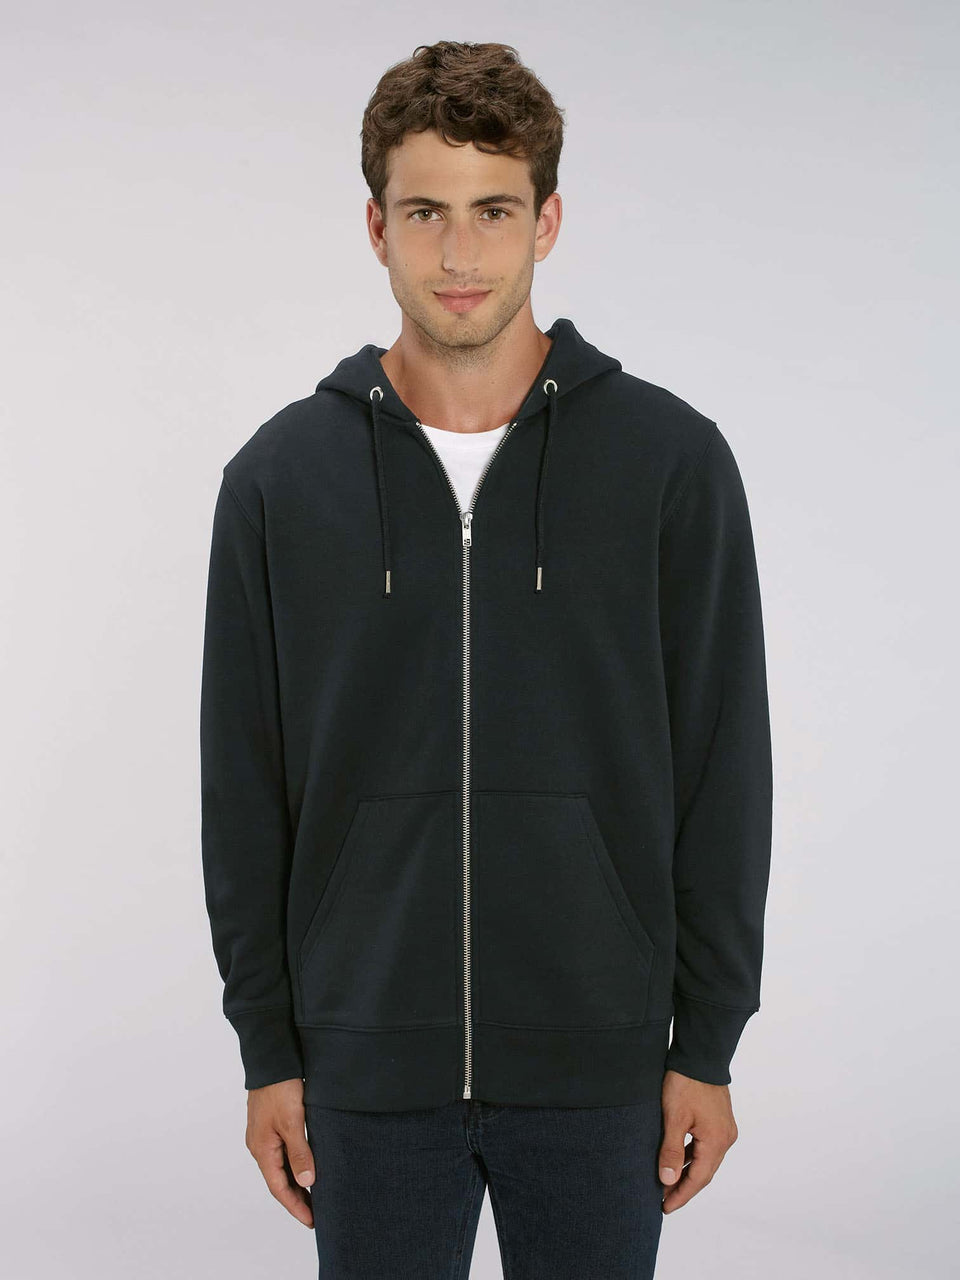 Song Weaving Made To Order Men zip-thru hoodie sweatshirt - Black